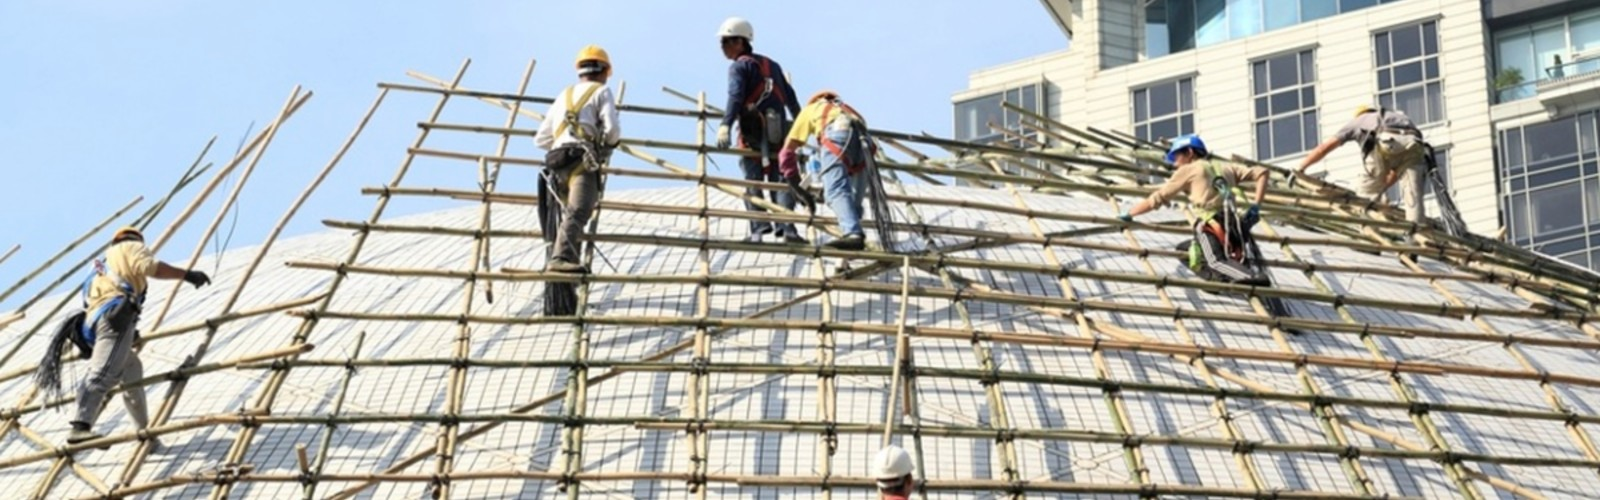 10 Short Lessons: Scaffolding Safety Starts Here